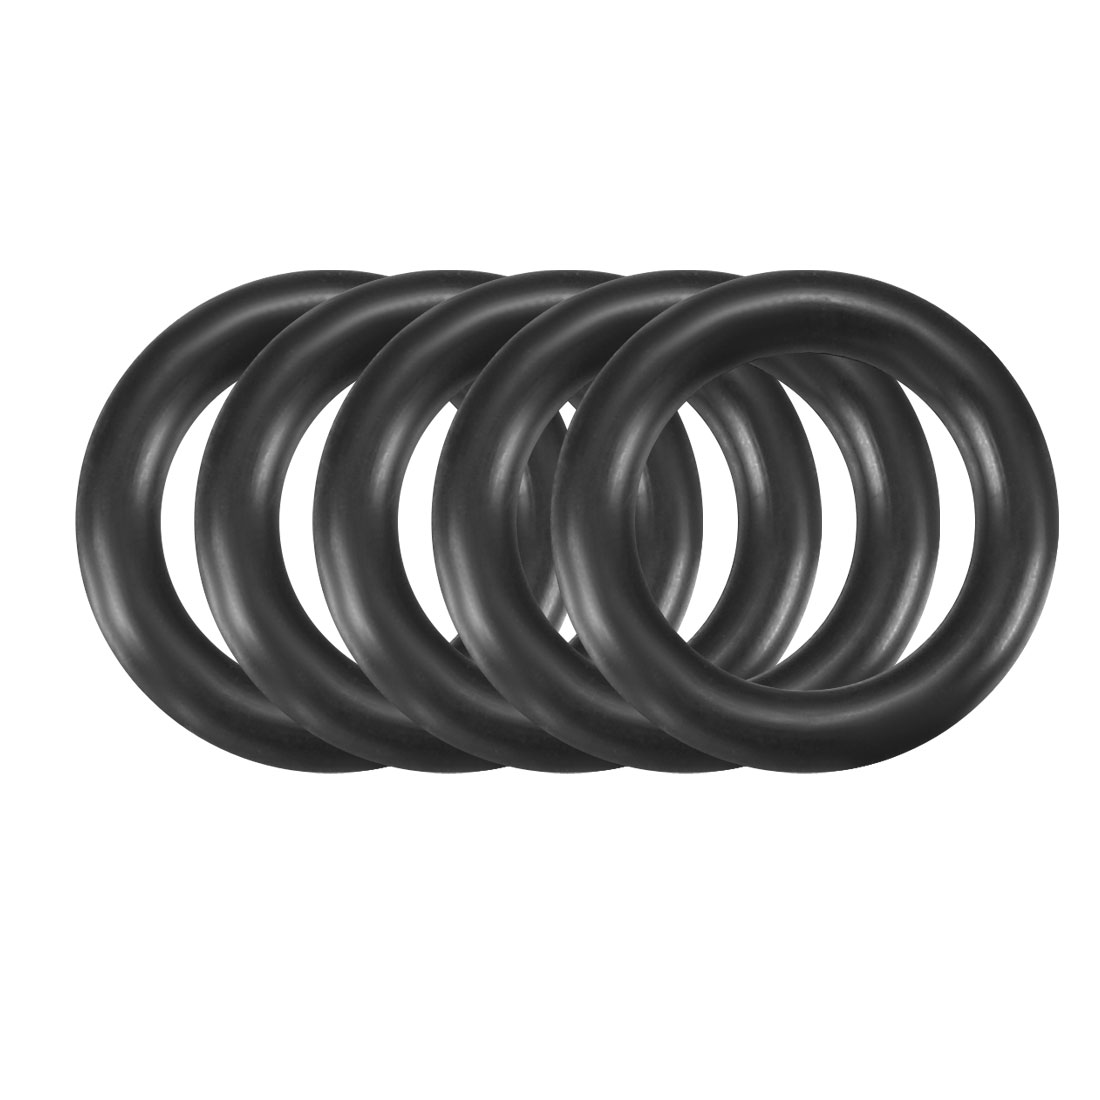 30Pcs Black 11 x 2mm Industrial Flexible Rubber O Ring Oil Sealing Grommets